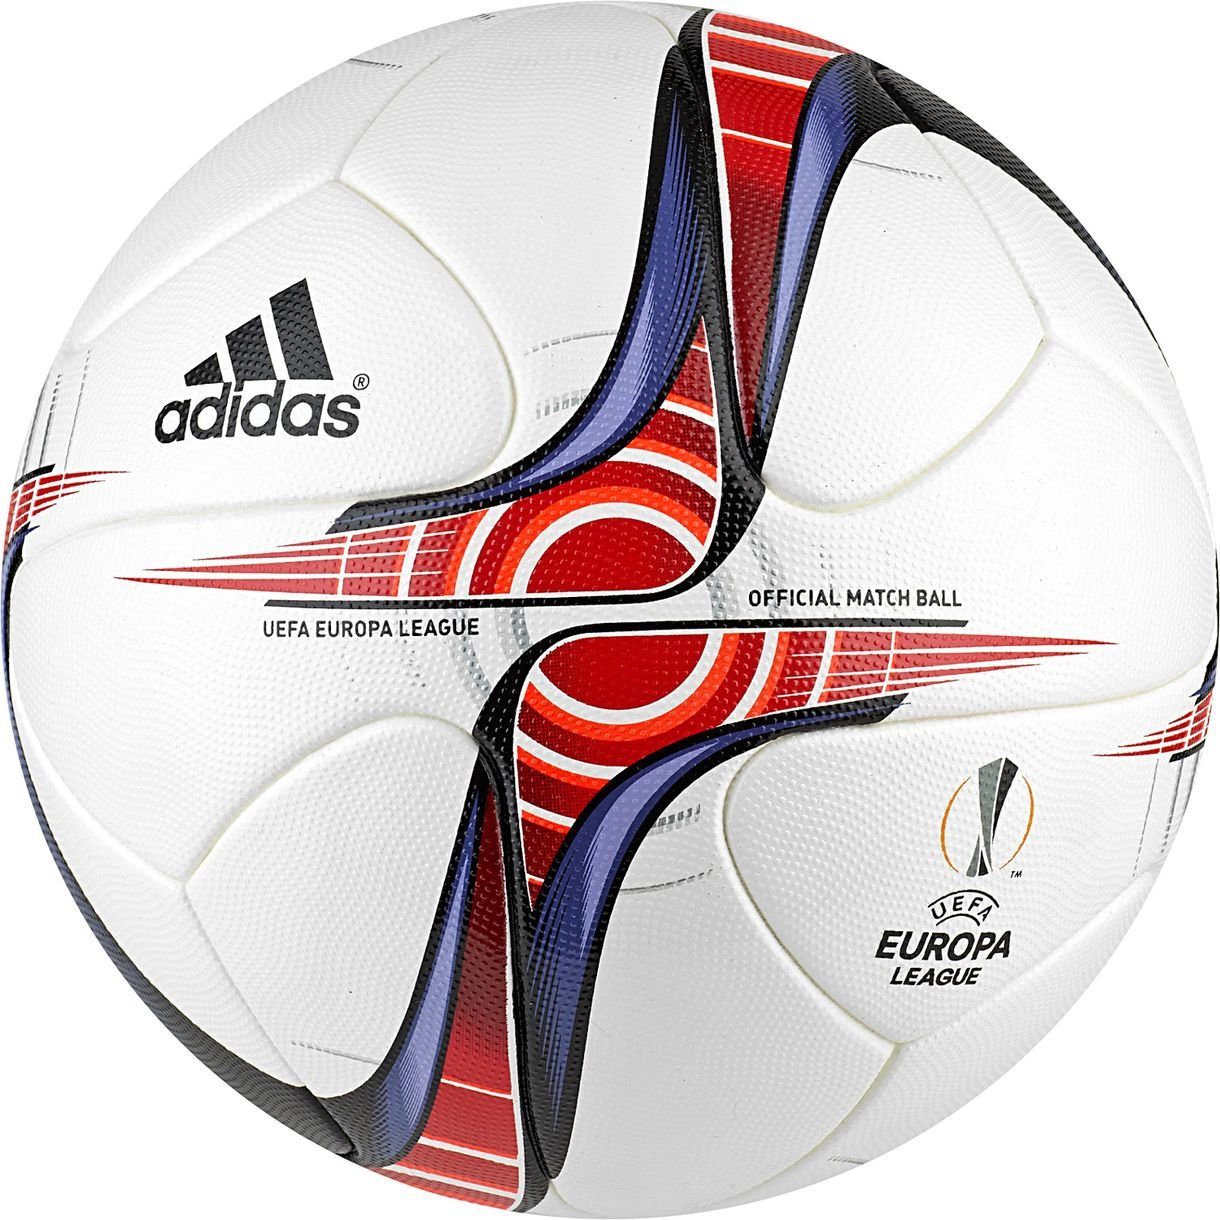 Míč adidas UEFA Europa League Official Match